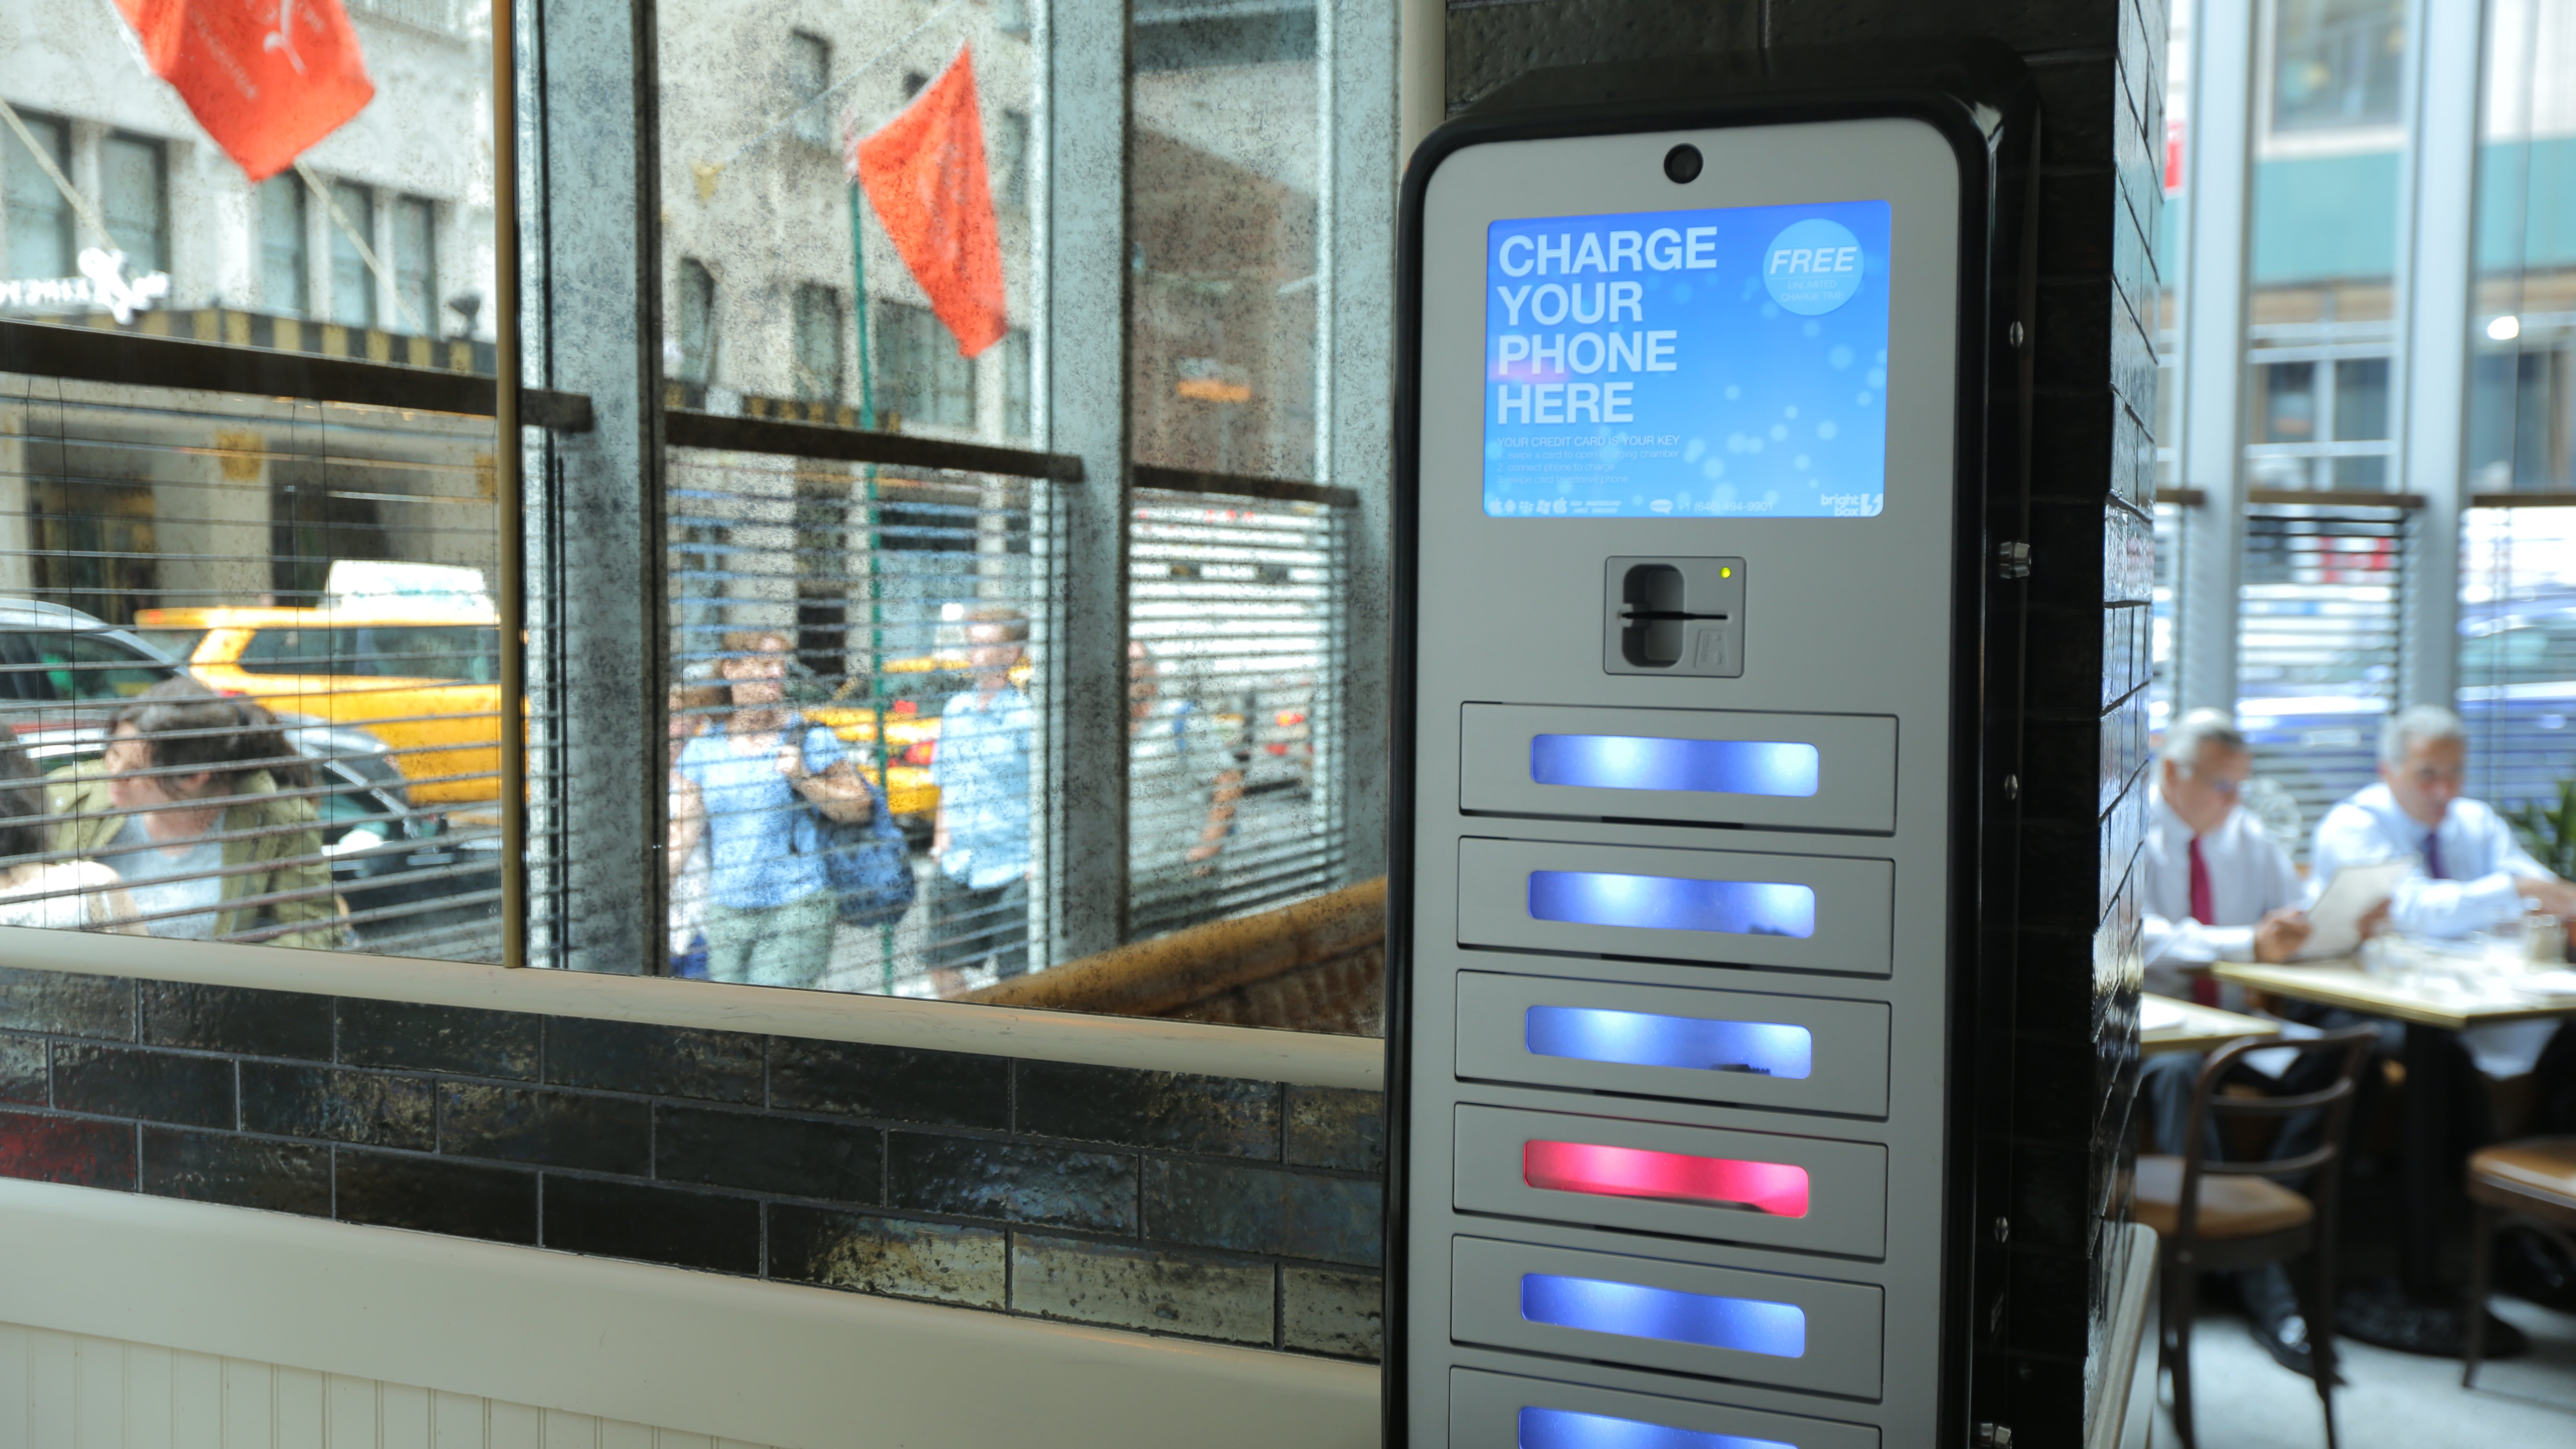 Charging Kiosks featured